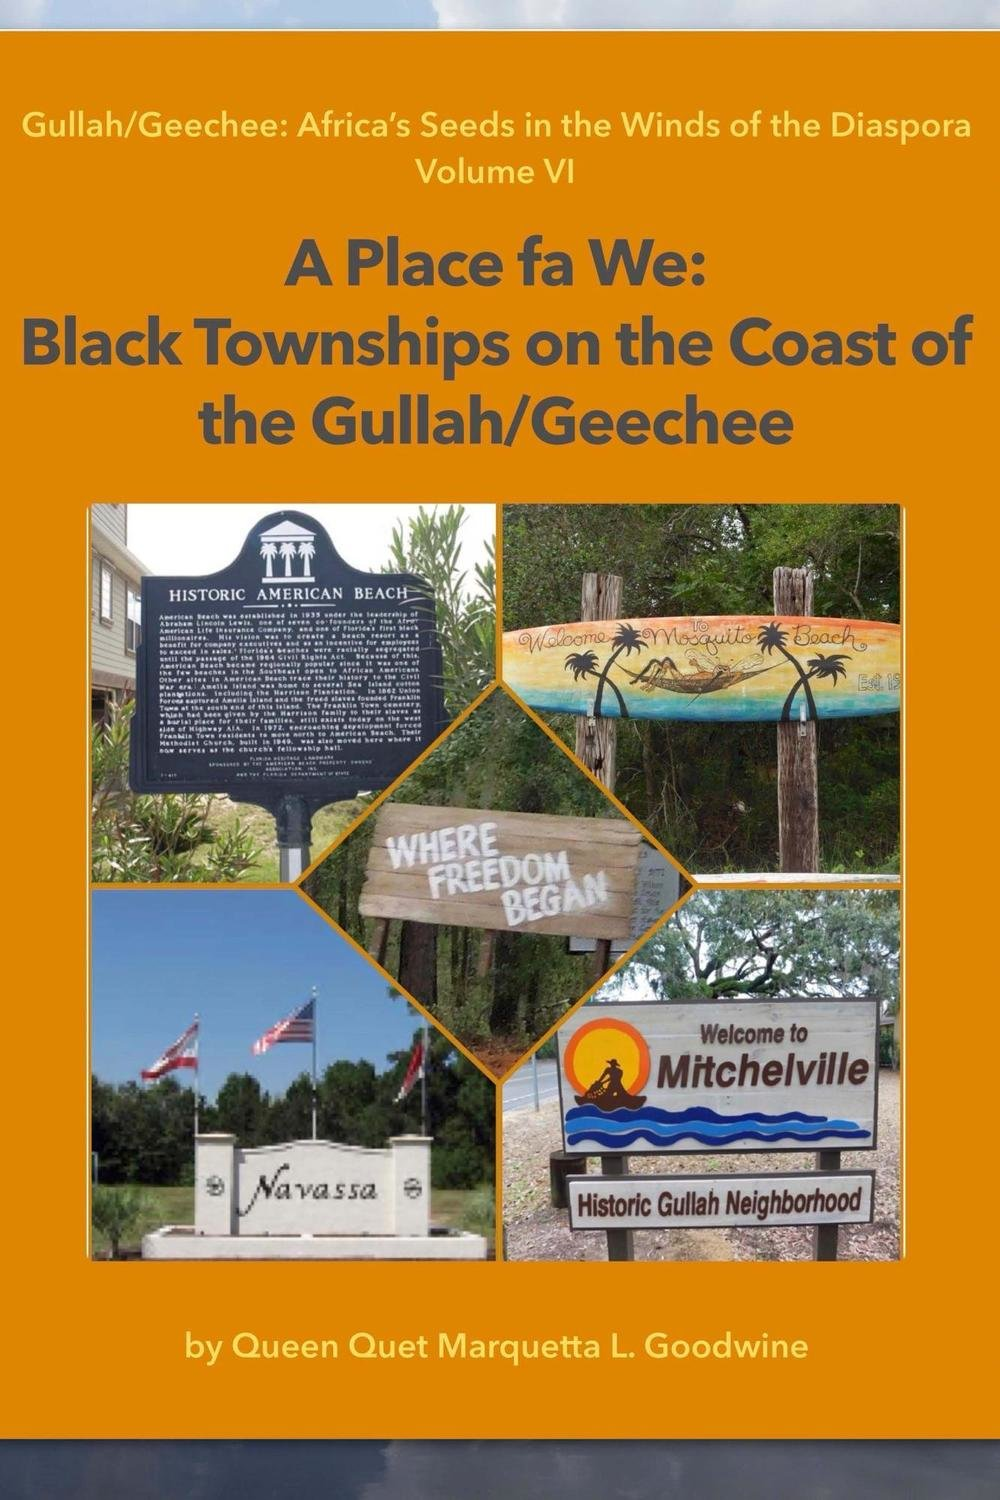 A Place Fa We: Black Townships on the Coast of the Gullah/Geechee